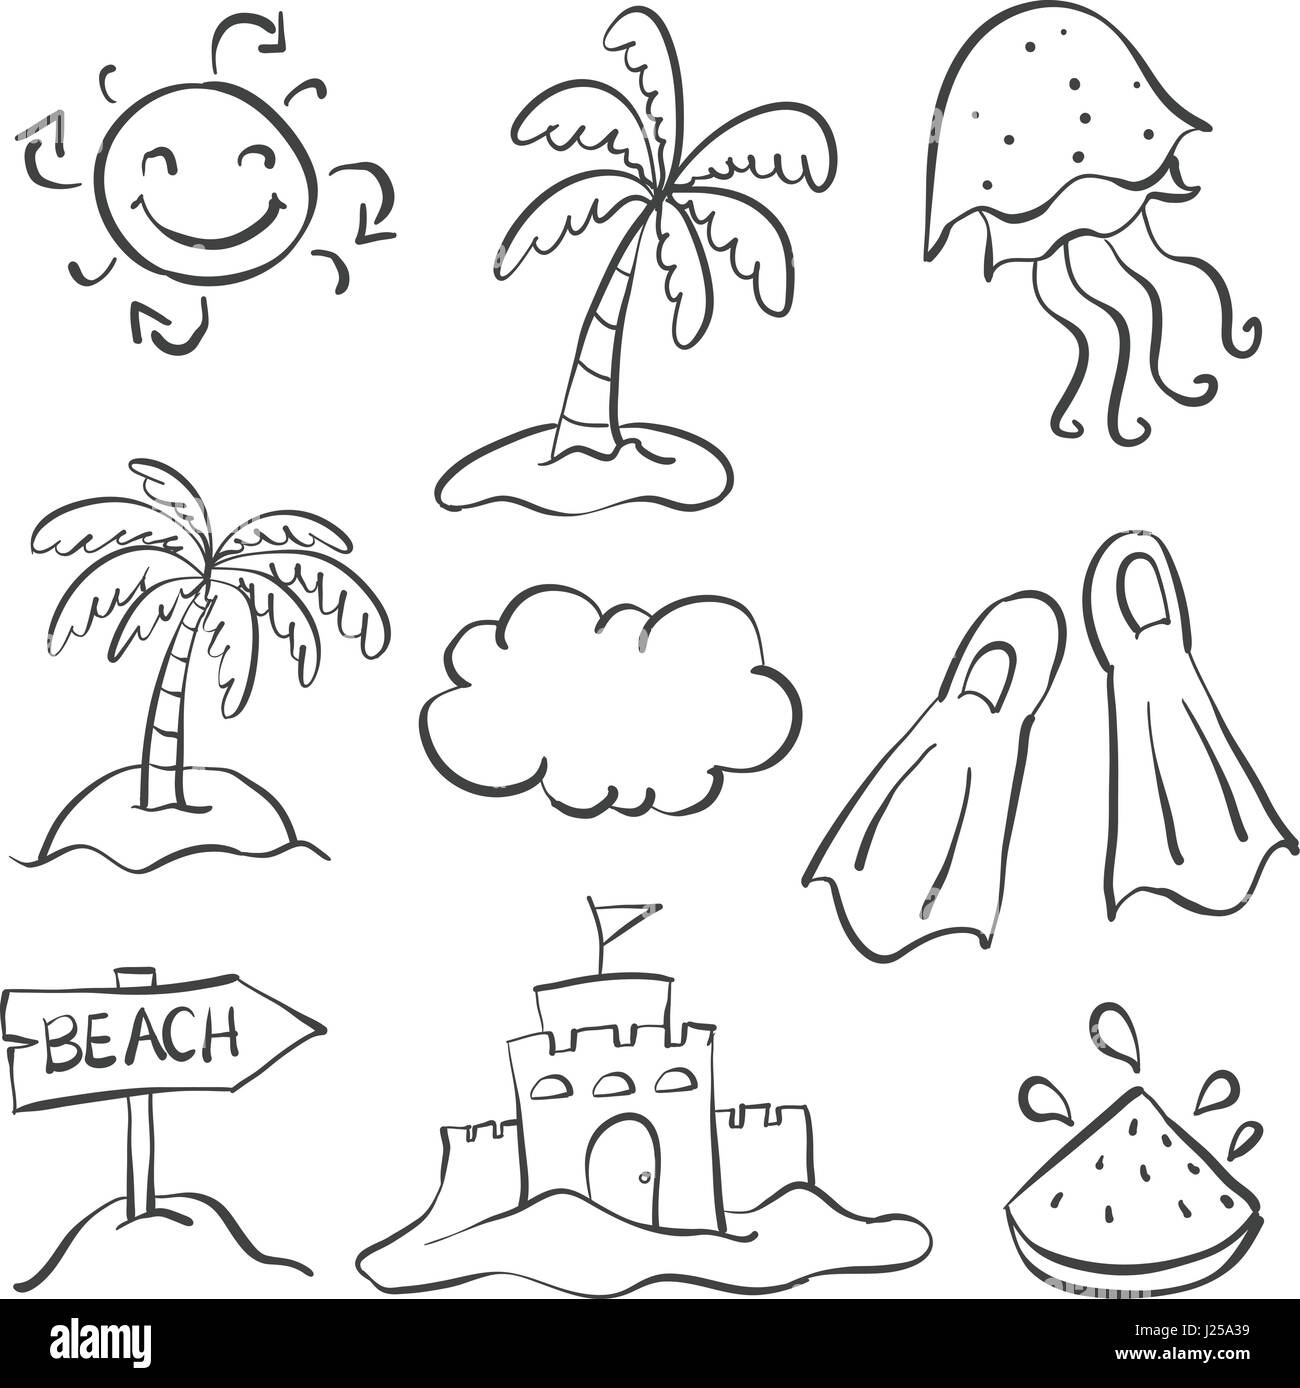 summer camps how to draw